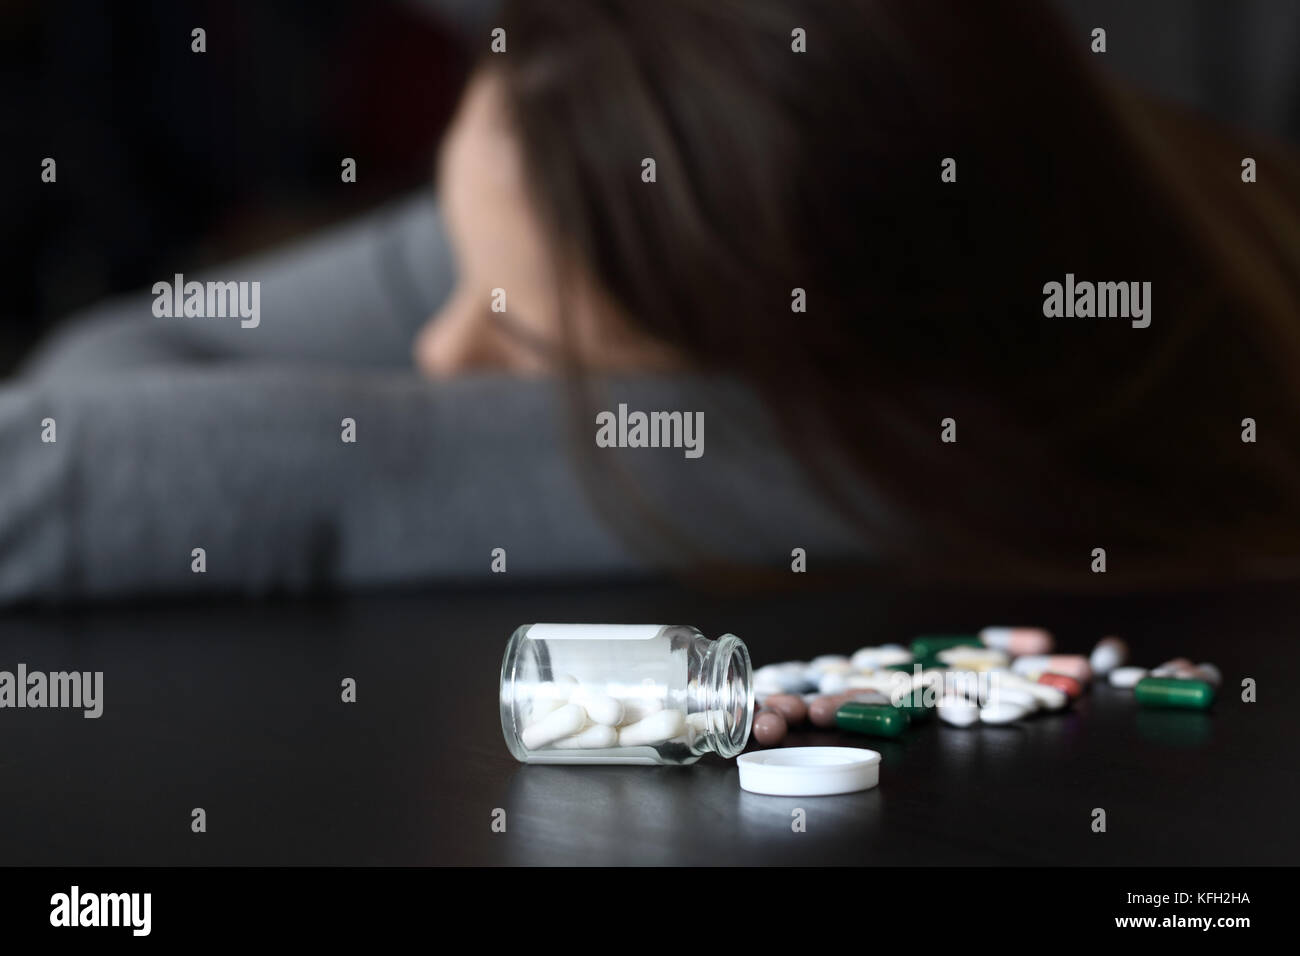 Close up of a woman lying dead after overdose of pills - Stock Image